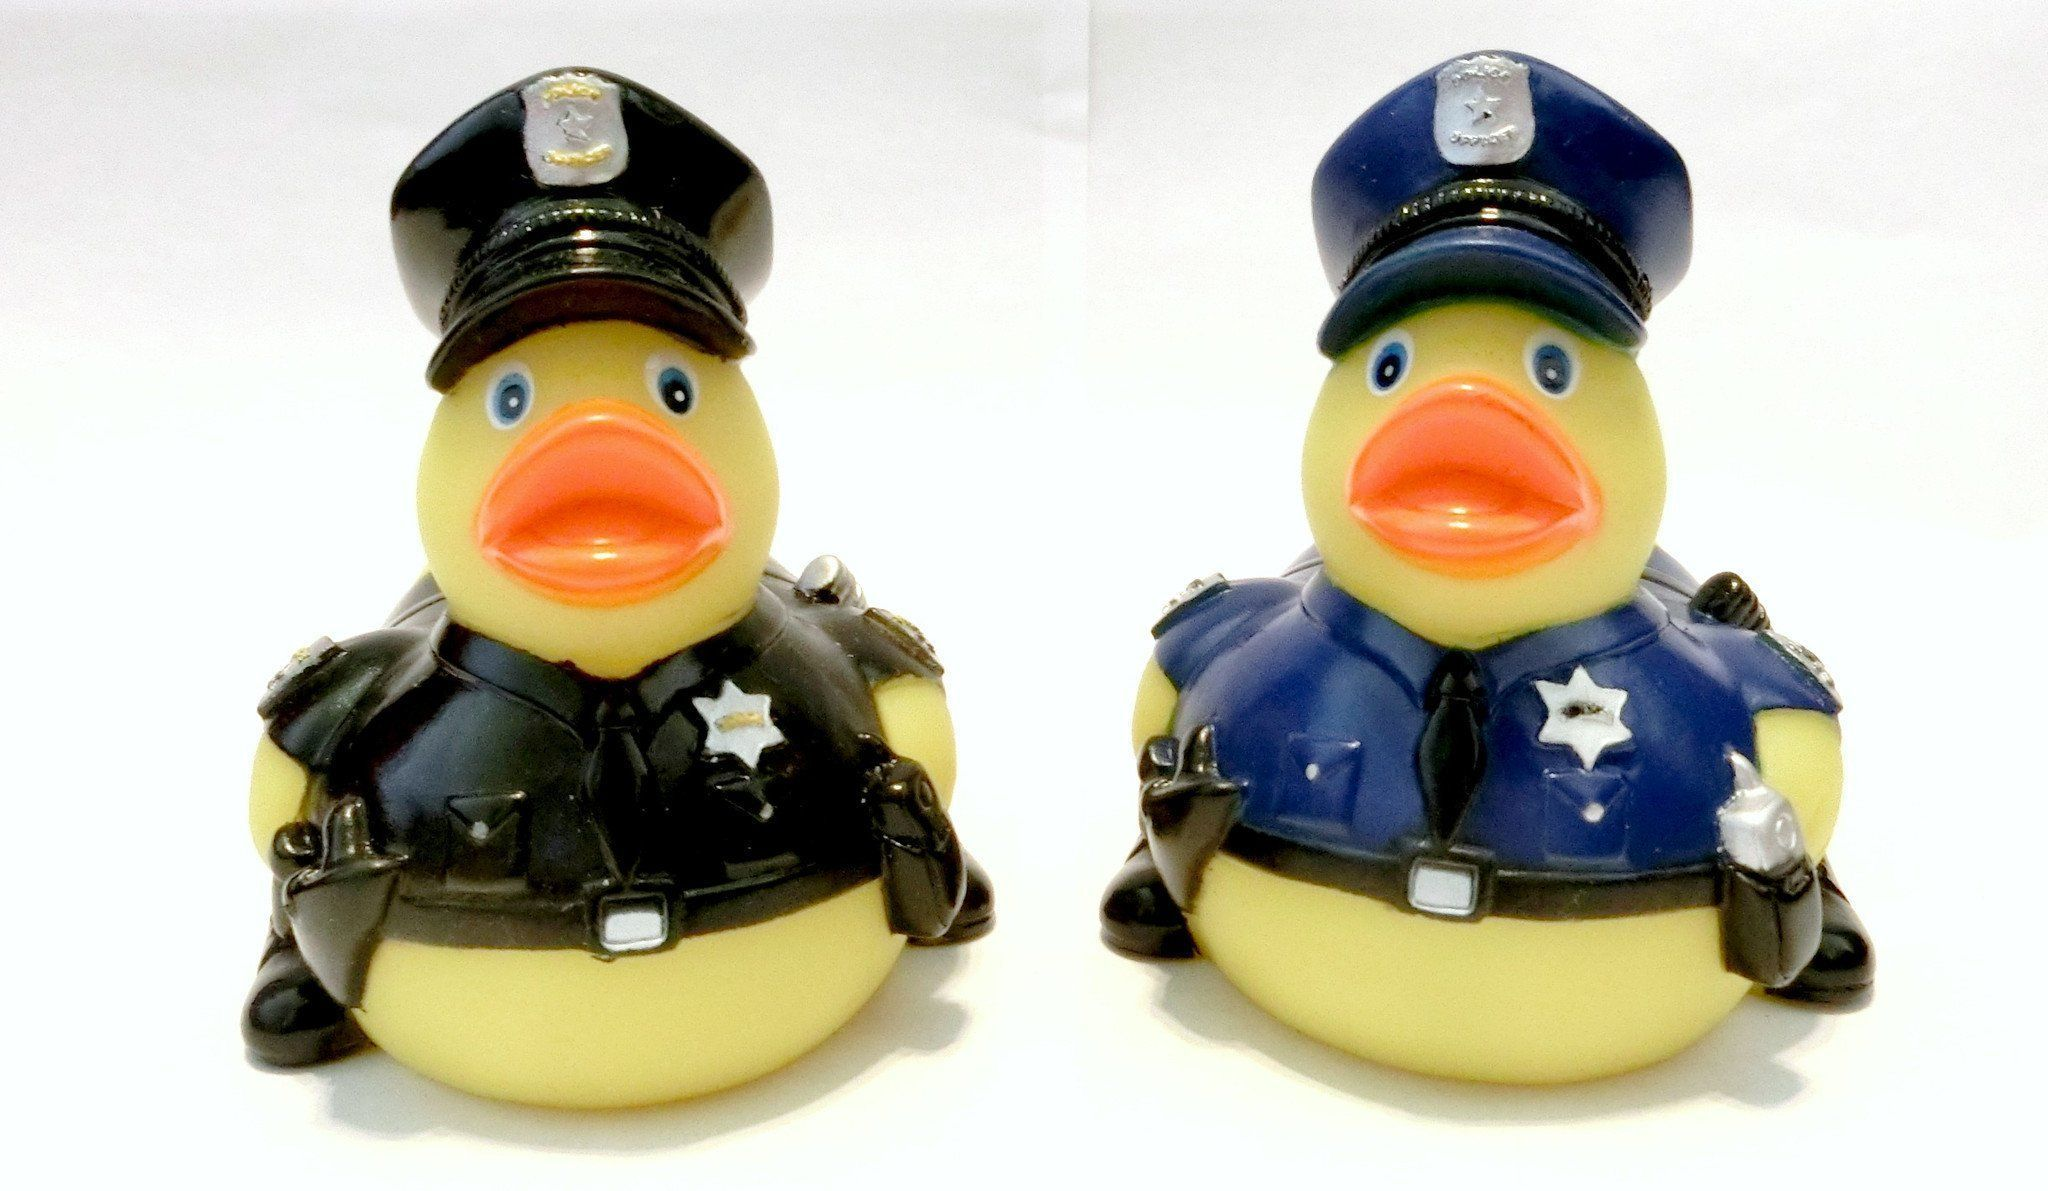 Rubber Police Duck Giant Rubber Duck For Sale In Bulk